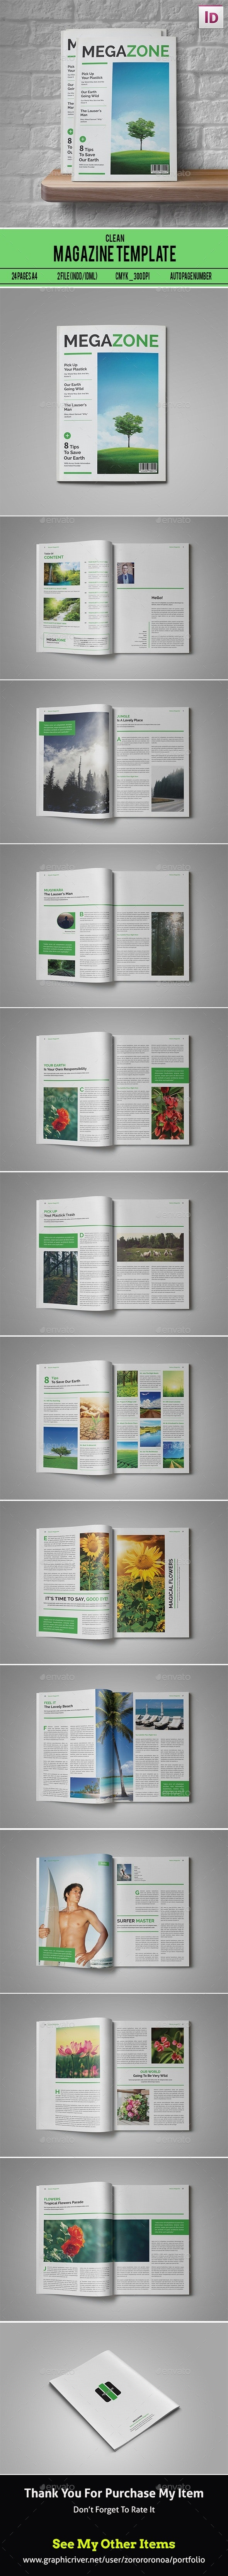 Clean & Simple Magazine Template - Magazines Print Templates